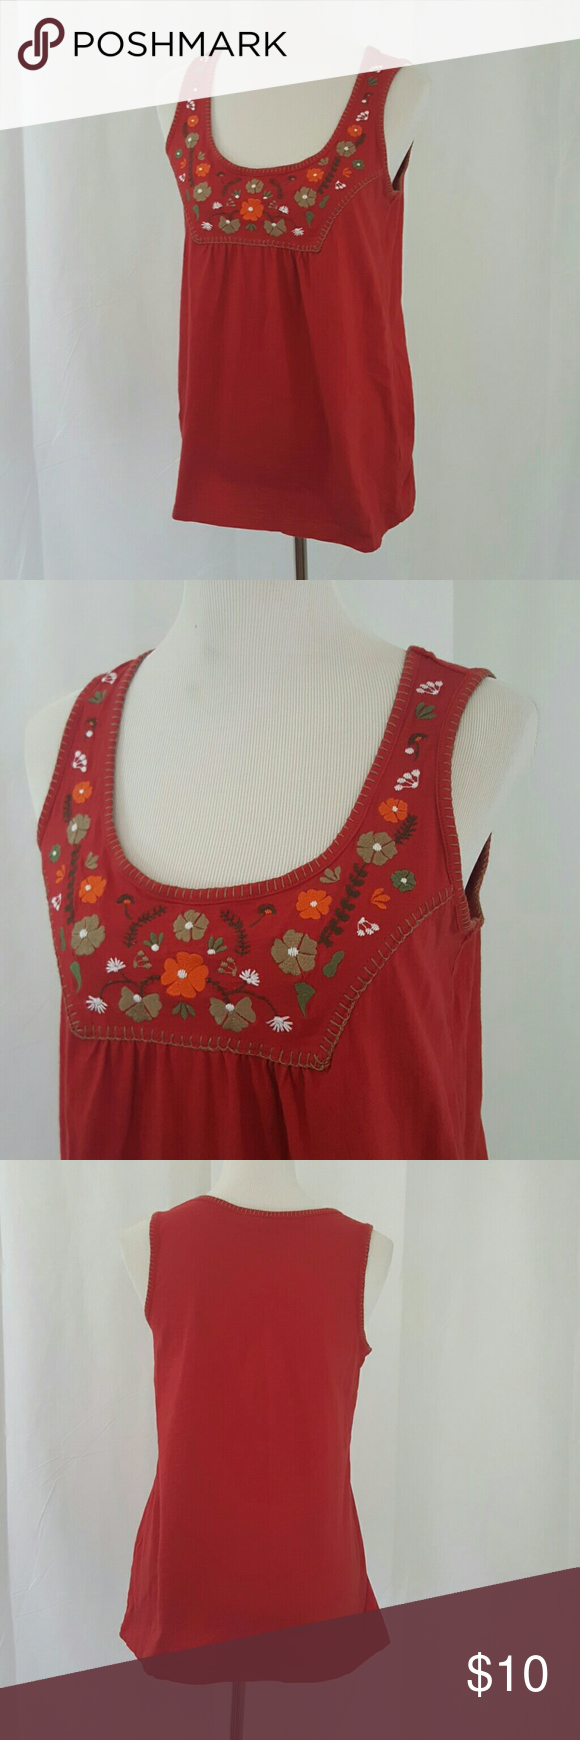 French Laundry Floral Embroidered Tank M EUC.  Red cotton floral tank. The bust is embroidered with sahe green and oranfe flowers.   French Laundry Bust 36 Length 28 french laundry Tops Tank Tops